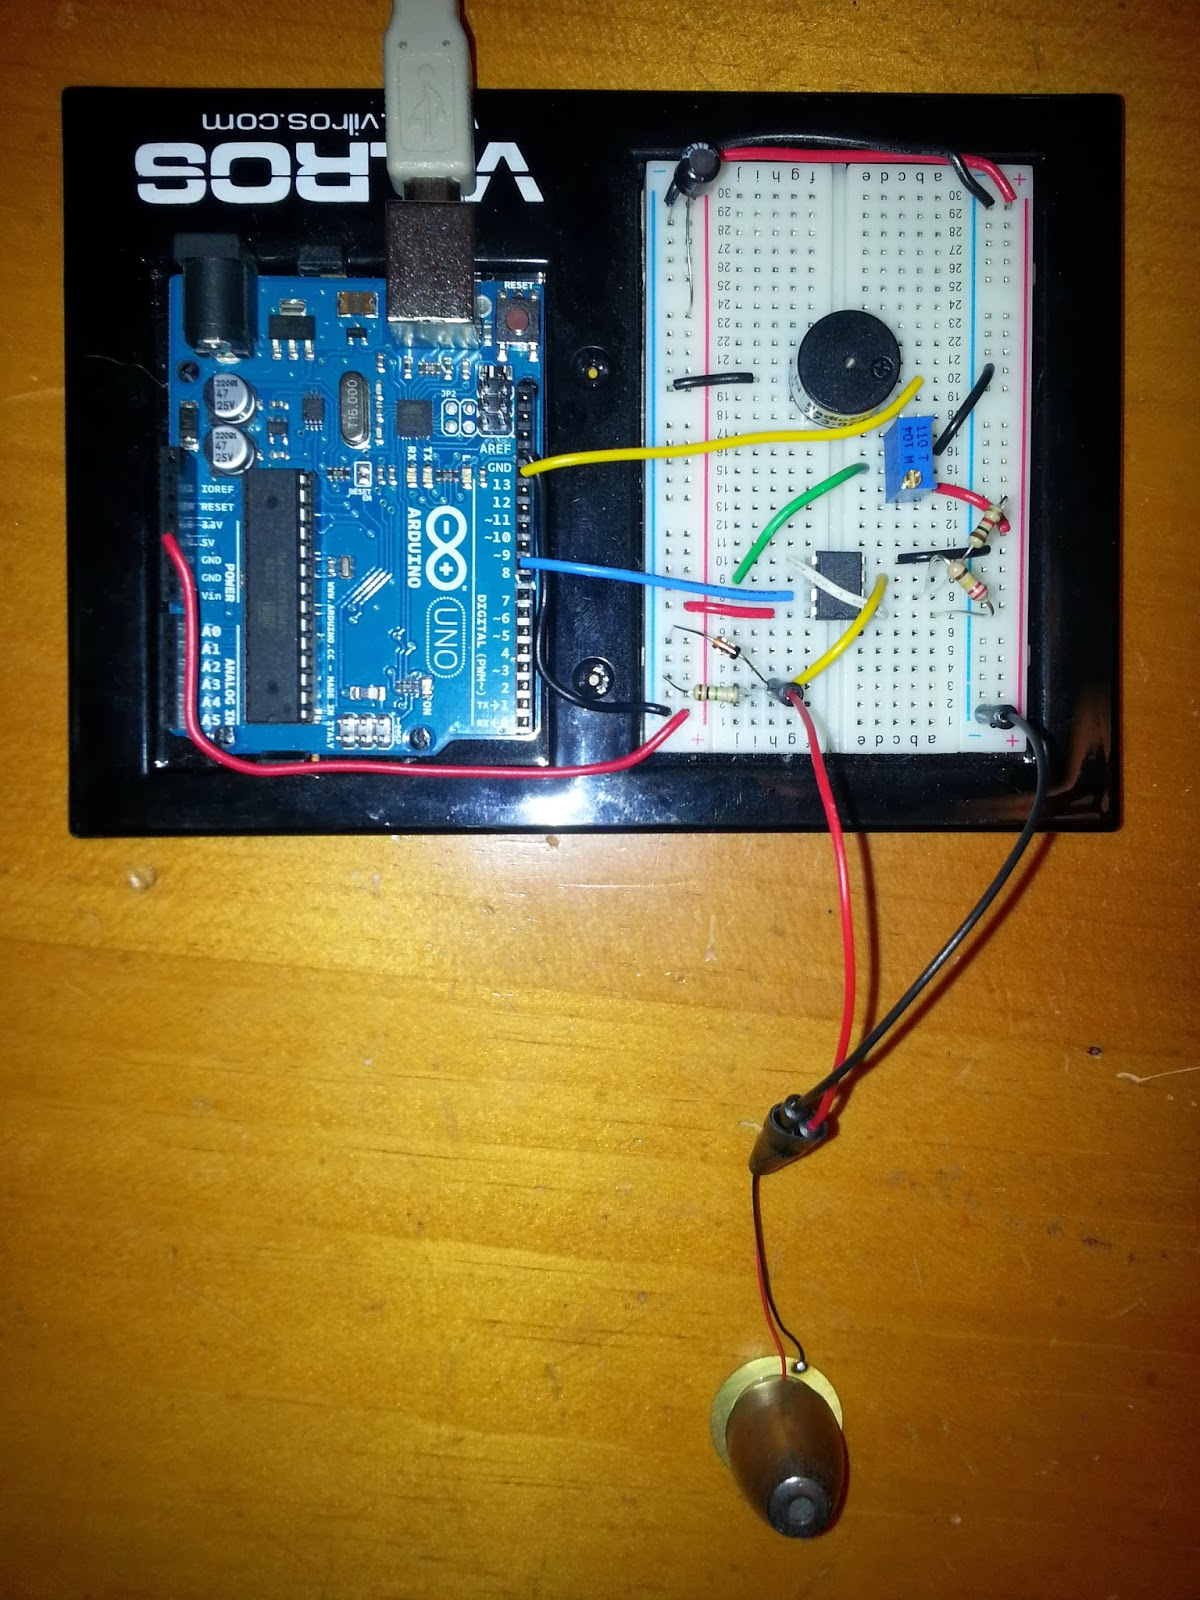 Internet Of Things High Sensitivity Vibration Sensor Using Arduino Circuit Piezo Electric Buzzer Explained Homemade Projects And A Close Up The Element With Fishing Weight Glued On Epoxy For Added